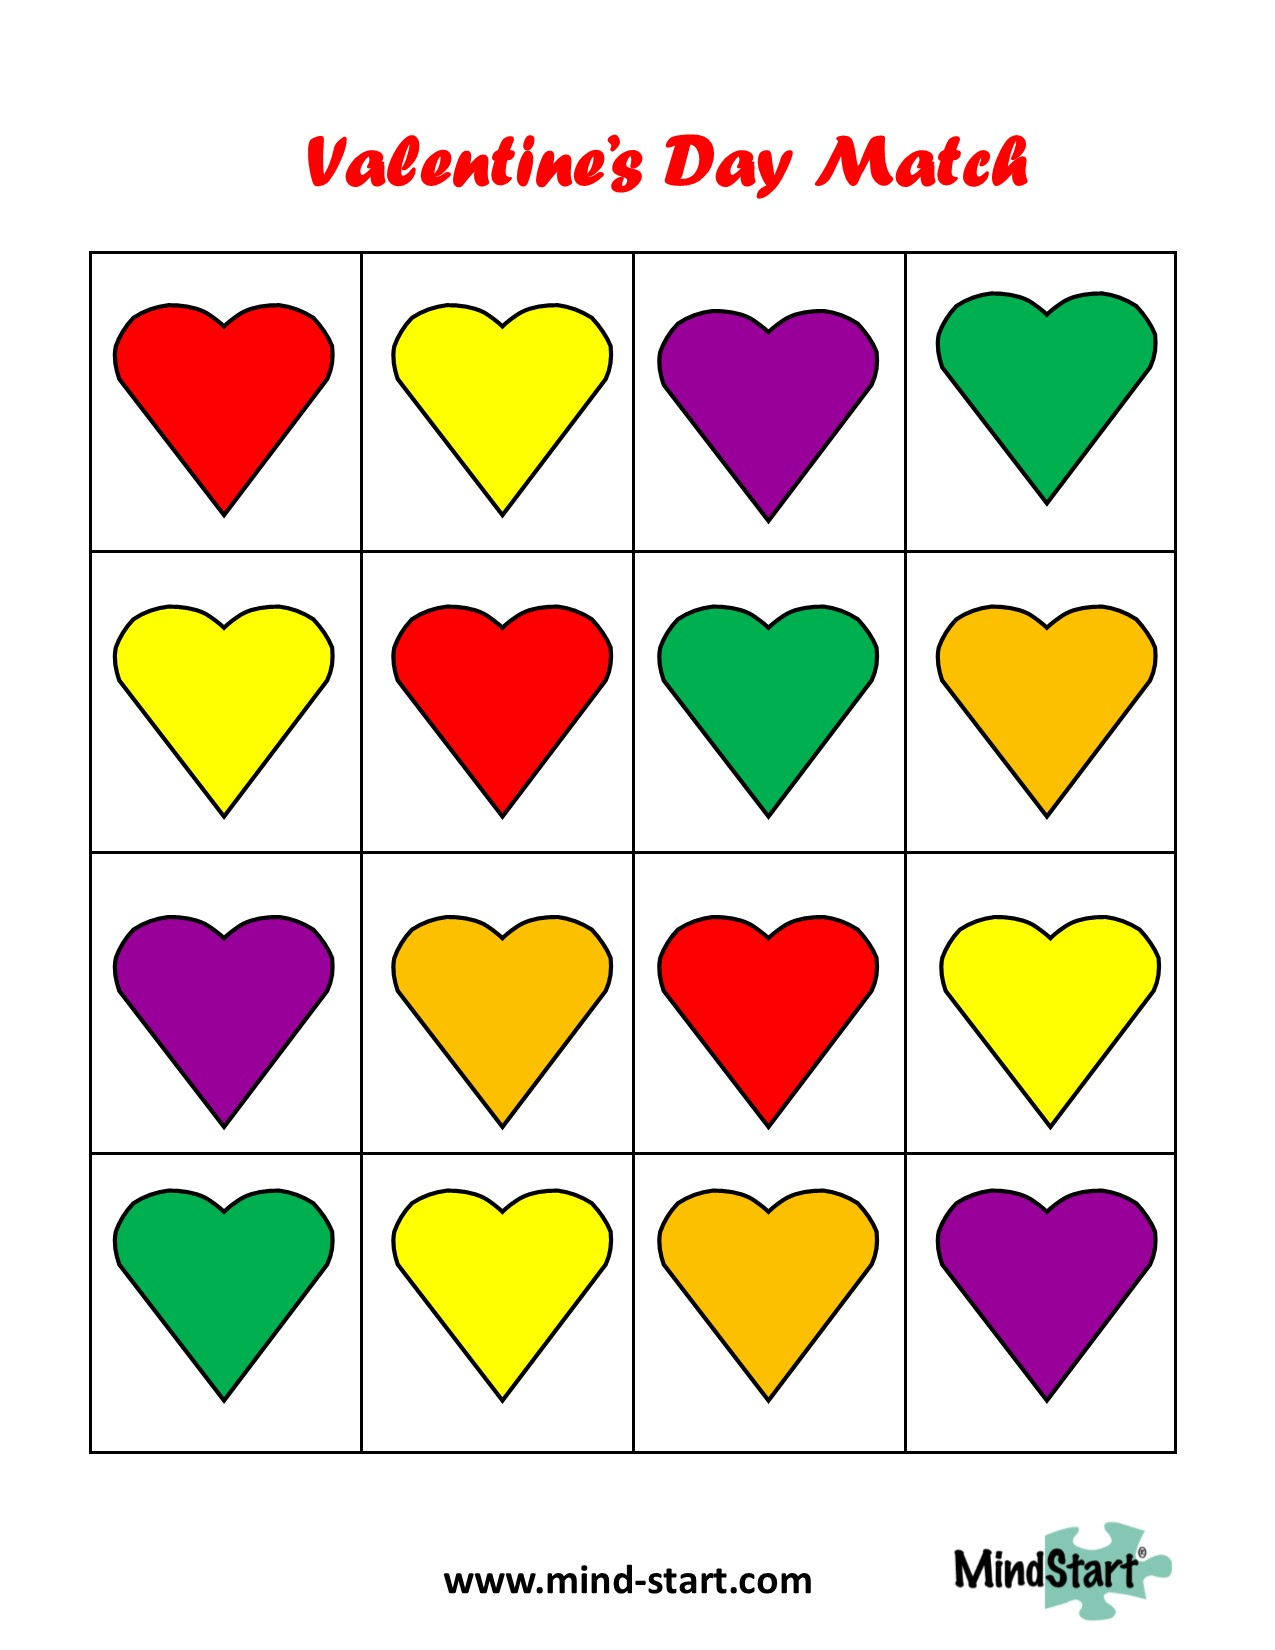 Valentine Match Game for Dementia